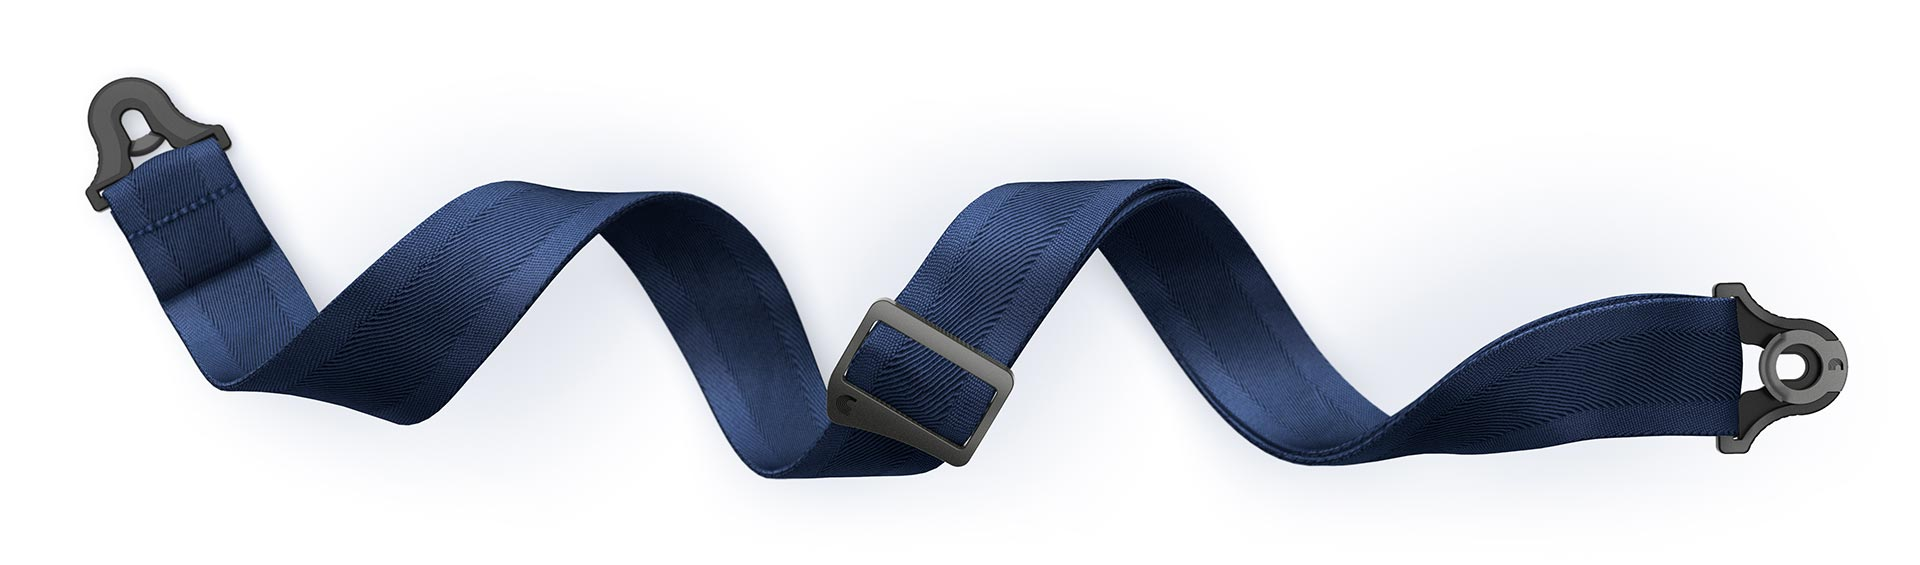 Strap 3D Rendering